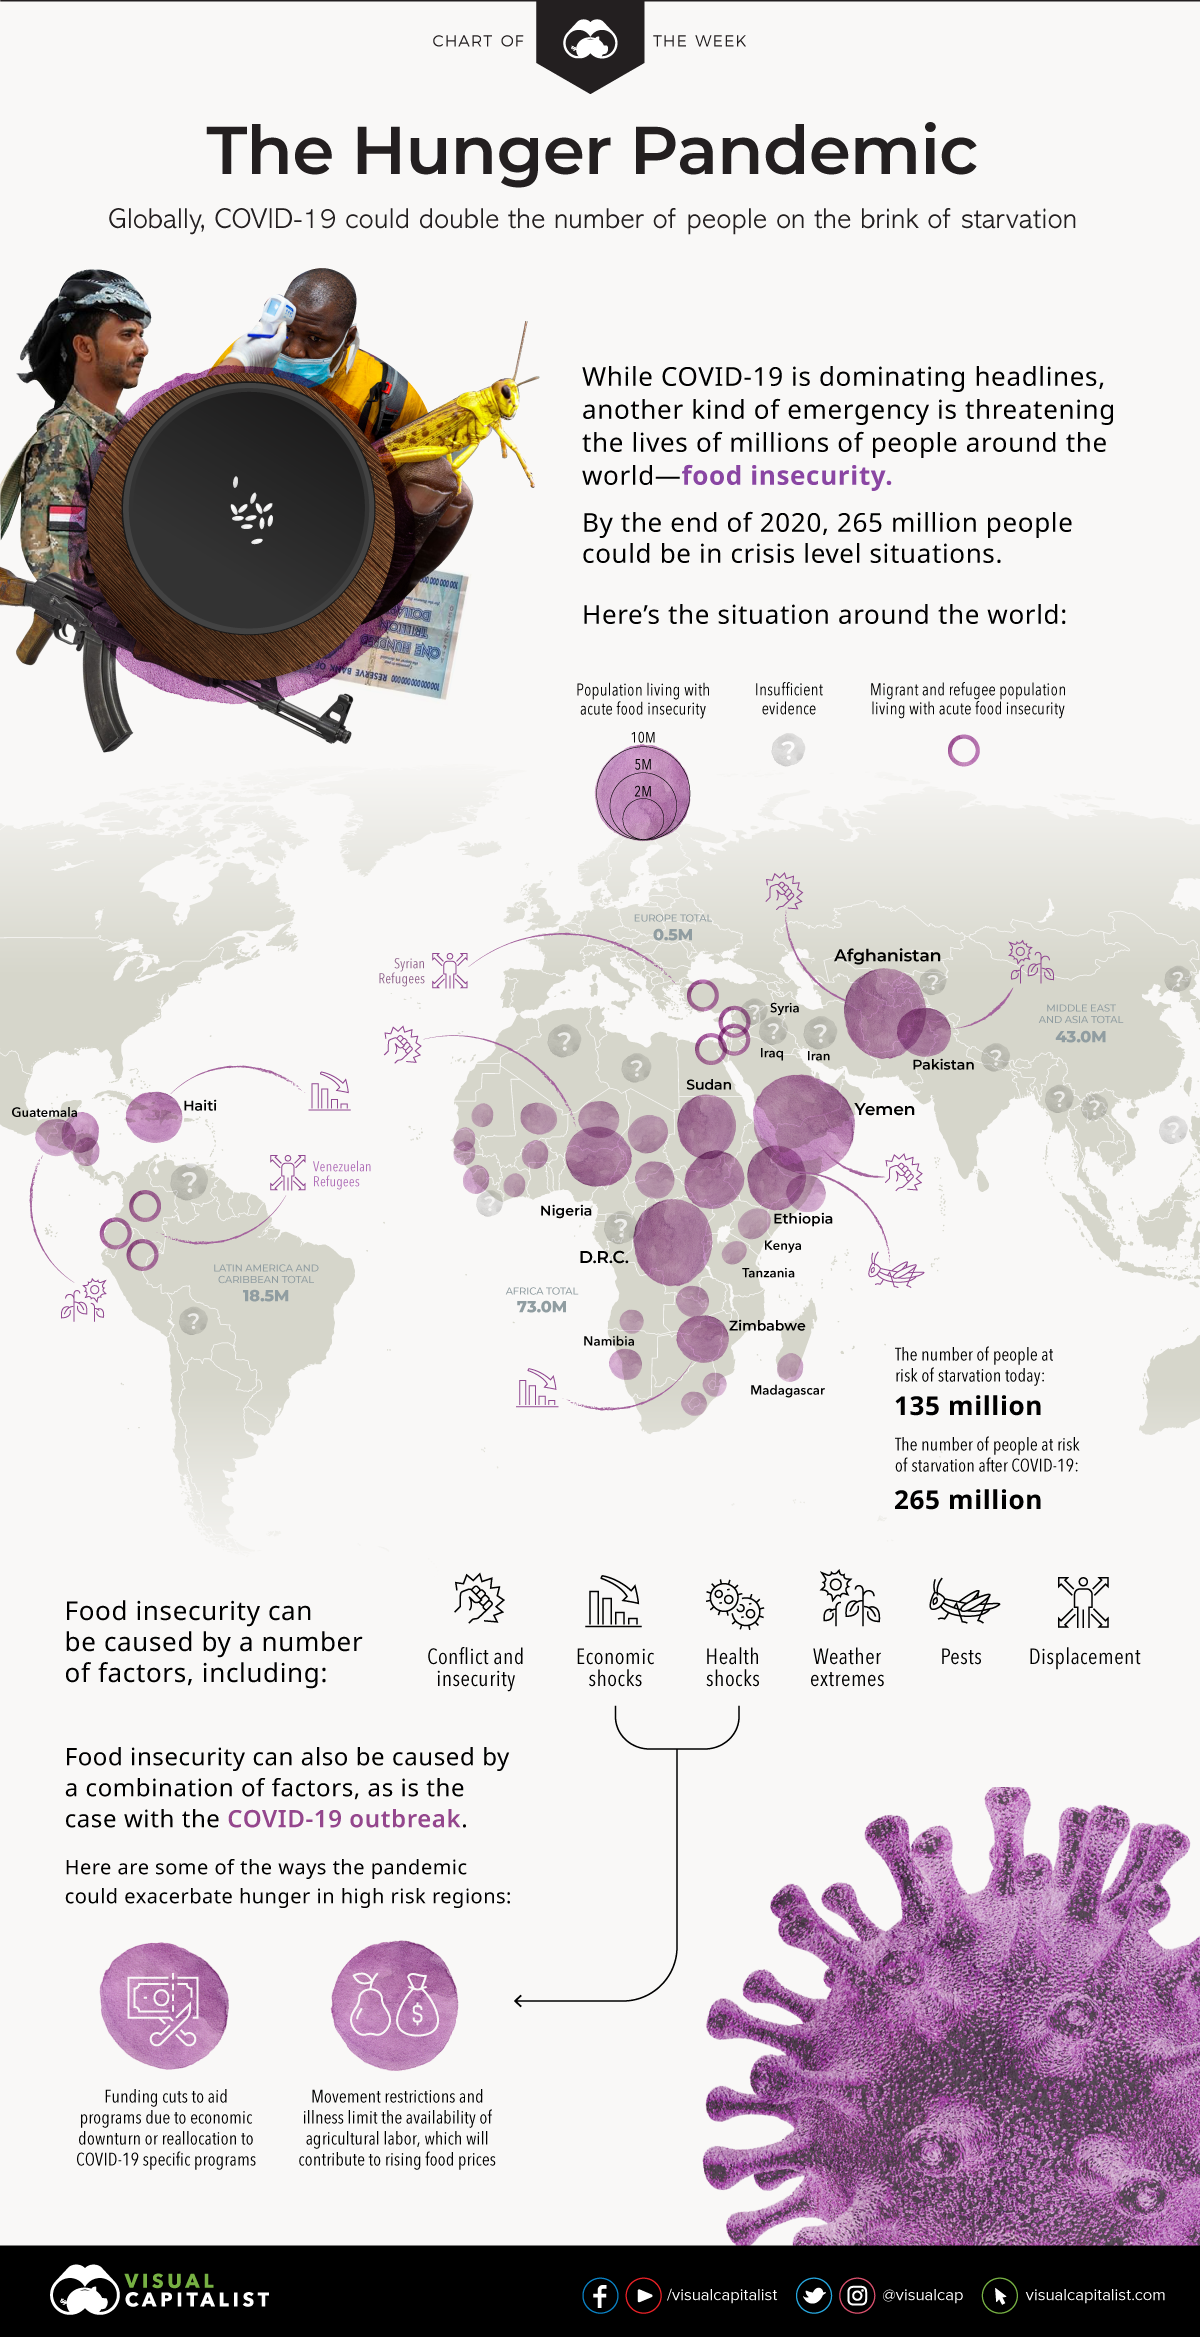 Hunger pandemic: The impact of COVID-19 on global food insecurity #infographic